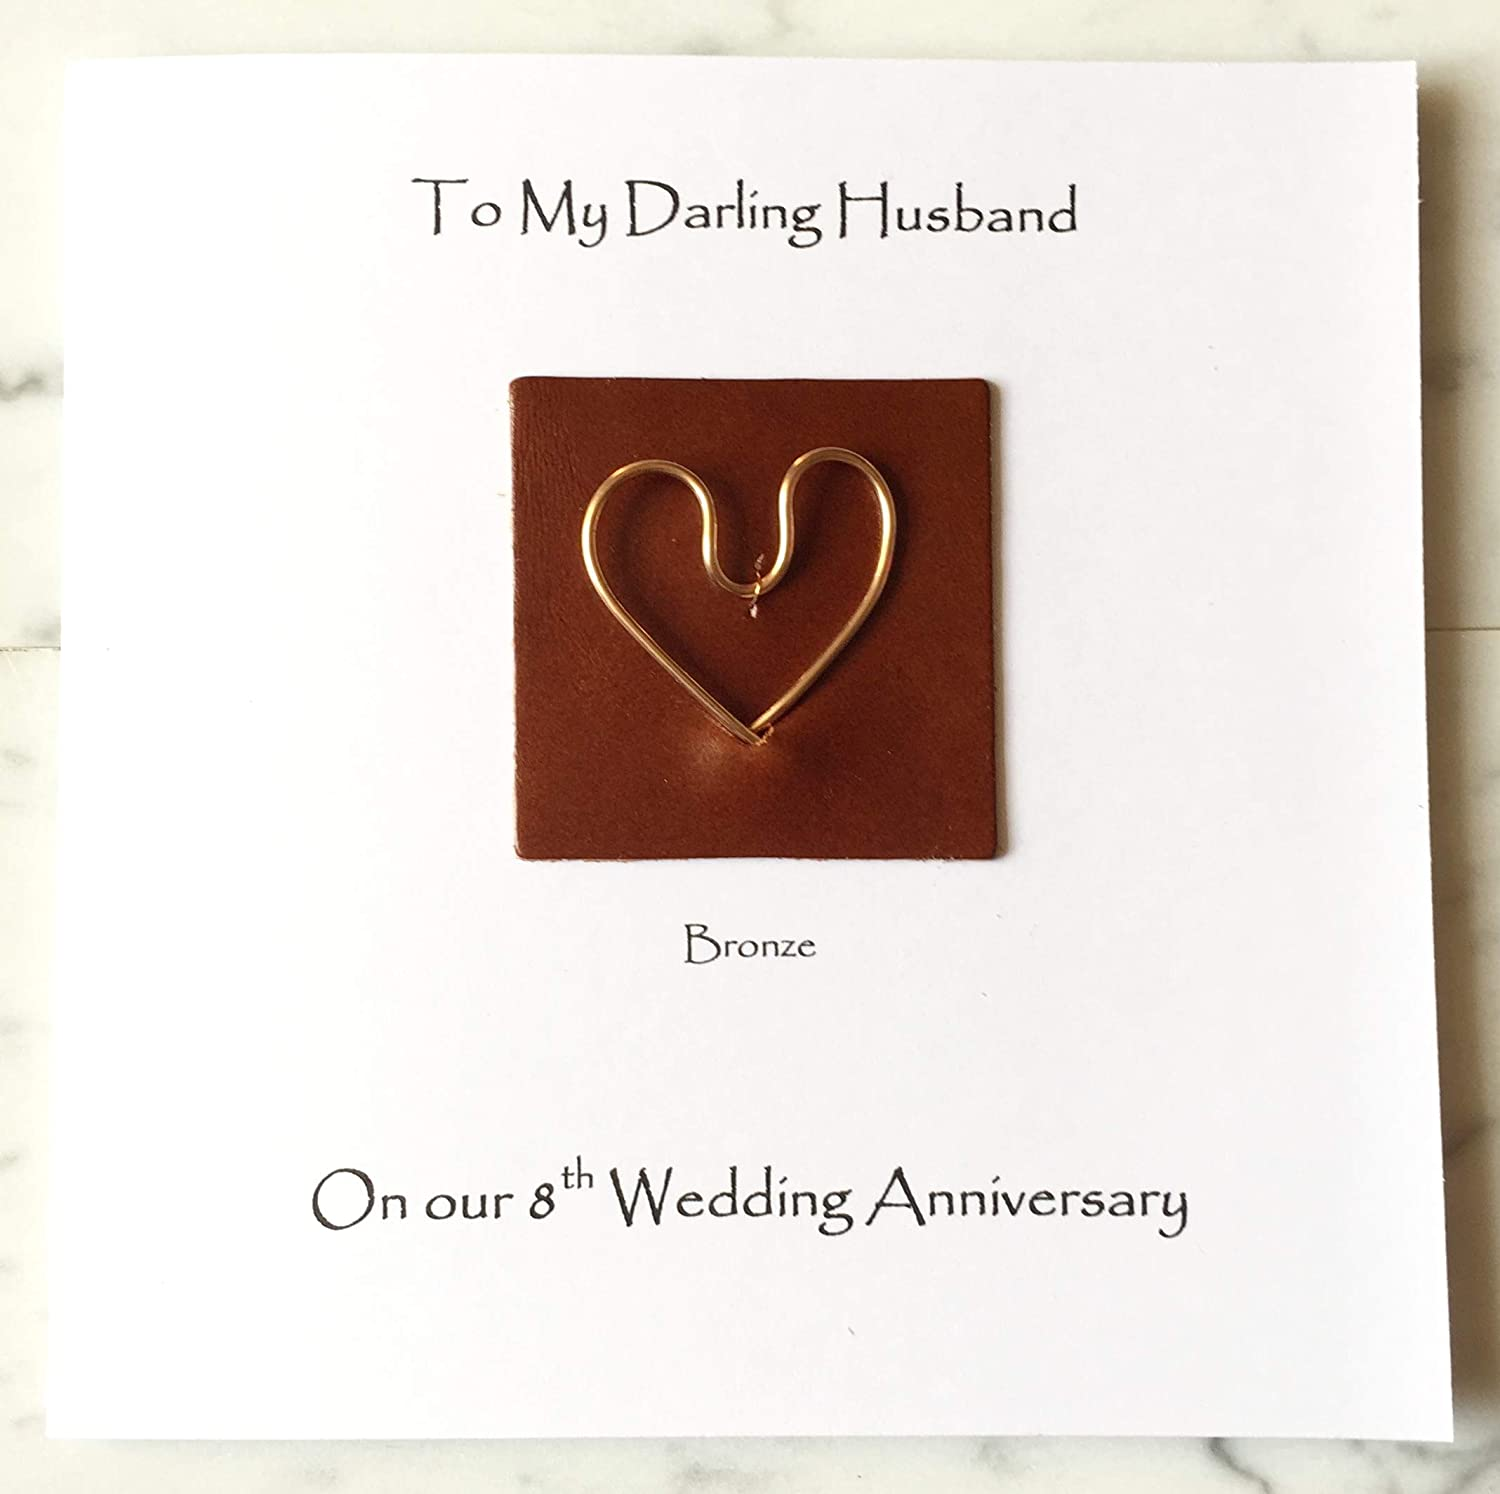 8th Wedding Anniversary Card Bronze Anniversary Wife Husband Bronze Heart On Leather Square Card 144mm X 144mm 5 5 X 5 5 Amazon Co Uk Handmade